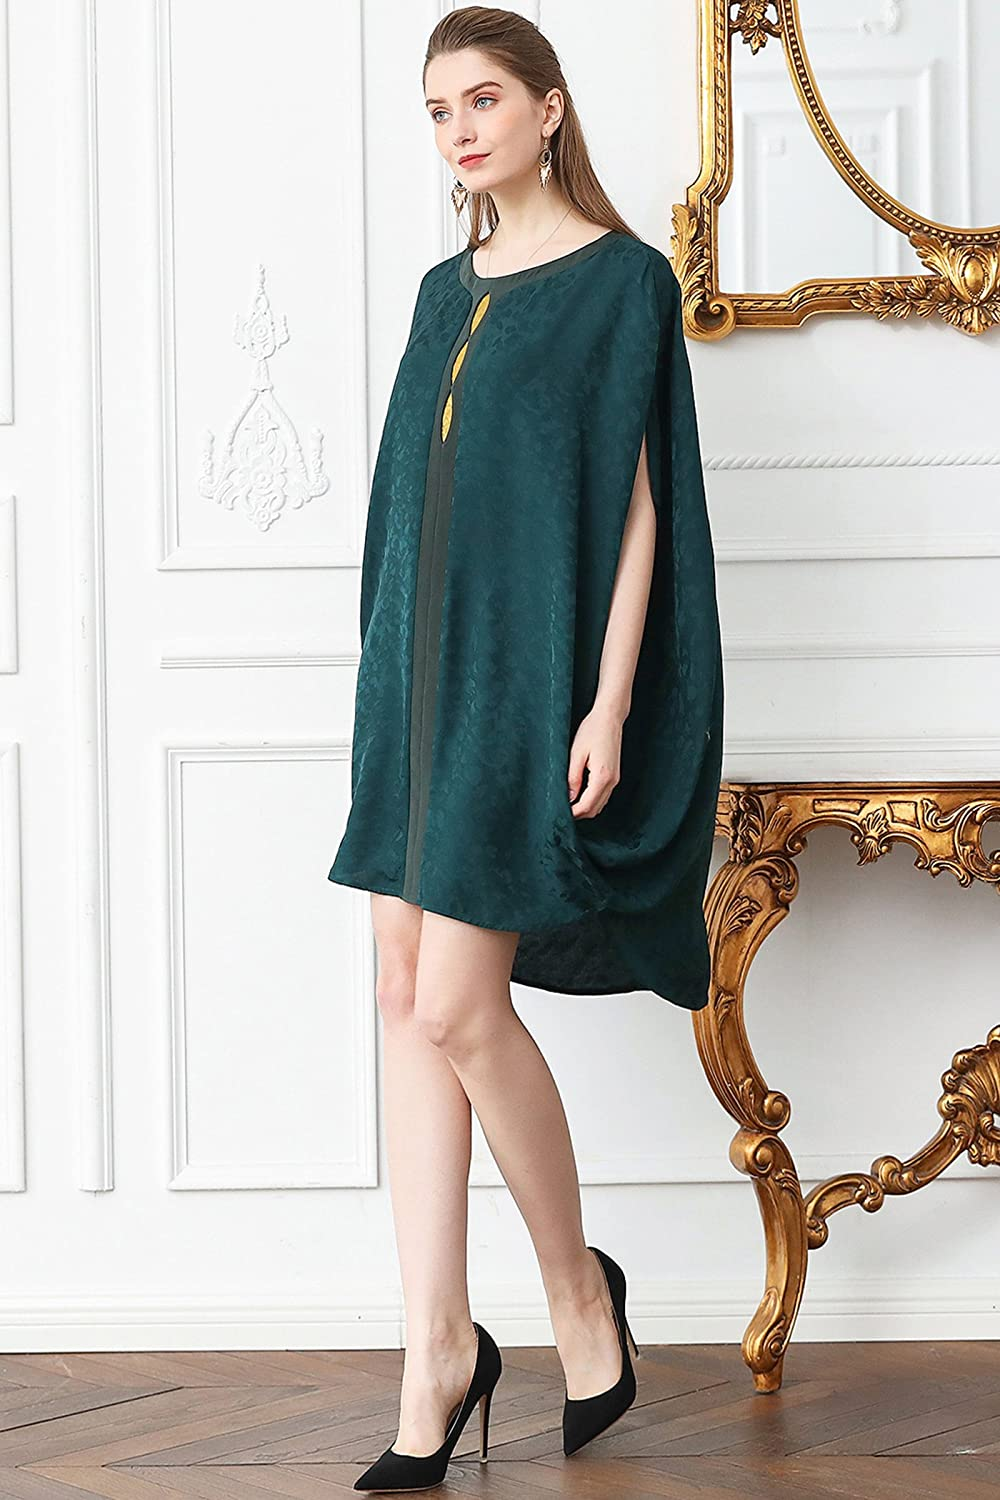 f20115b1a90d5 VOA Women s Silk Forest Green High Low Shirt O-Neck 3 4 Sleeve Loose B120  at Amazon Women s Clothing store